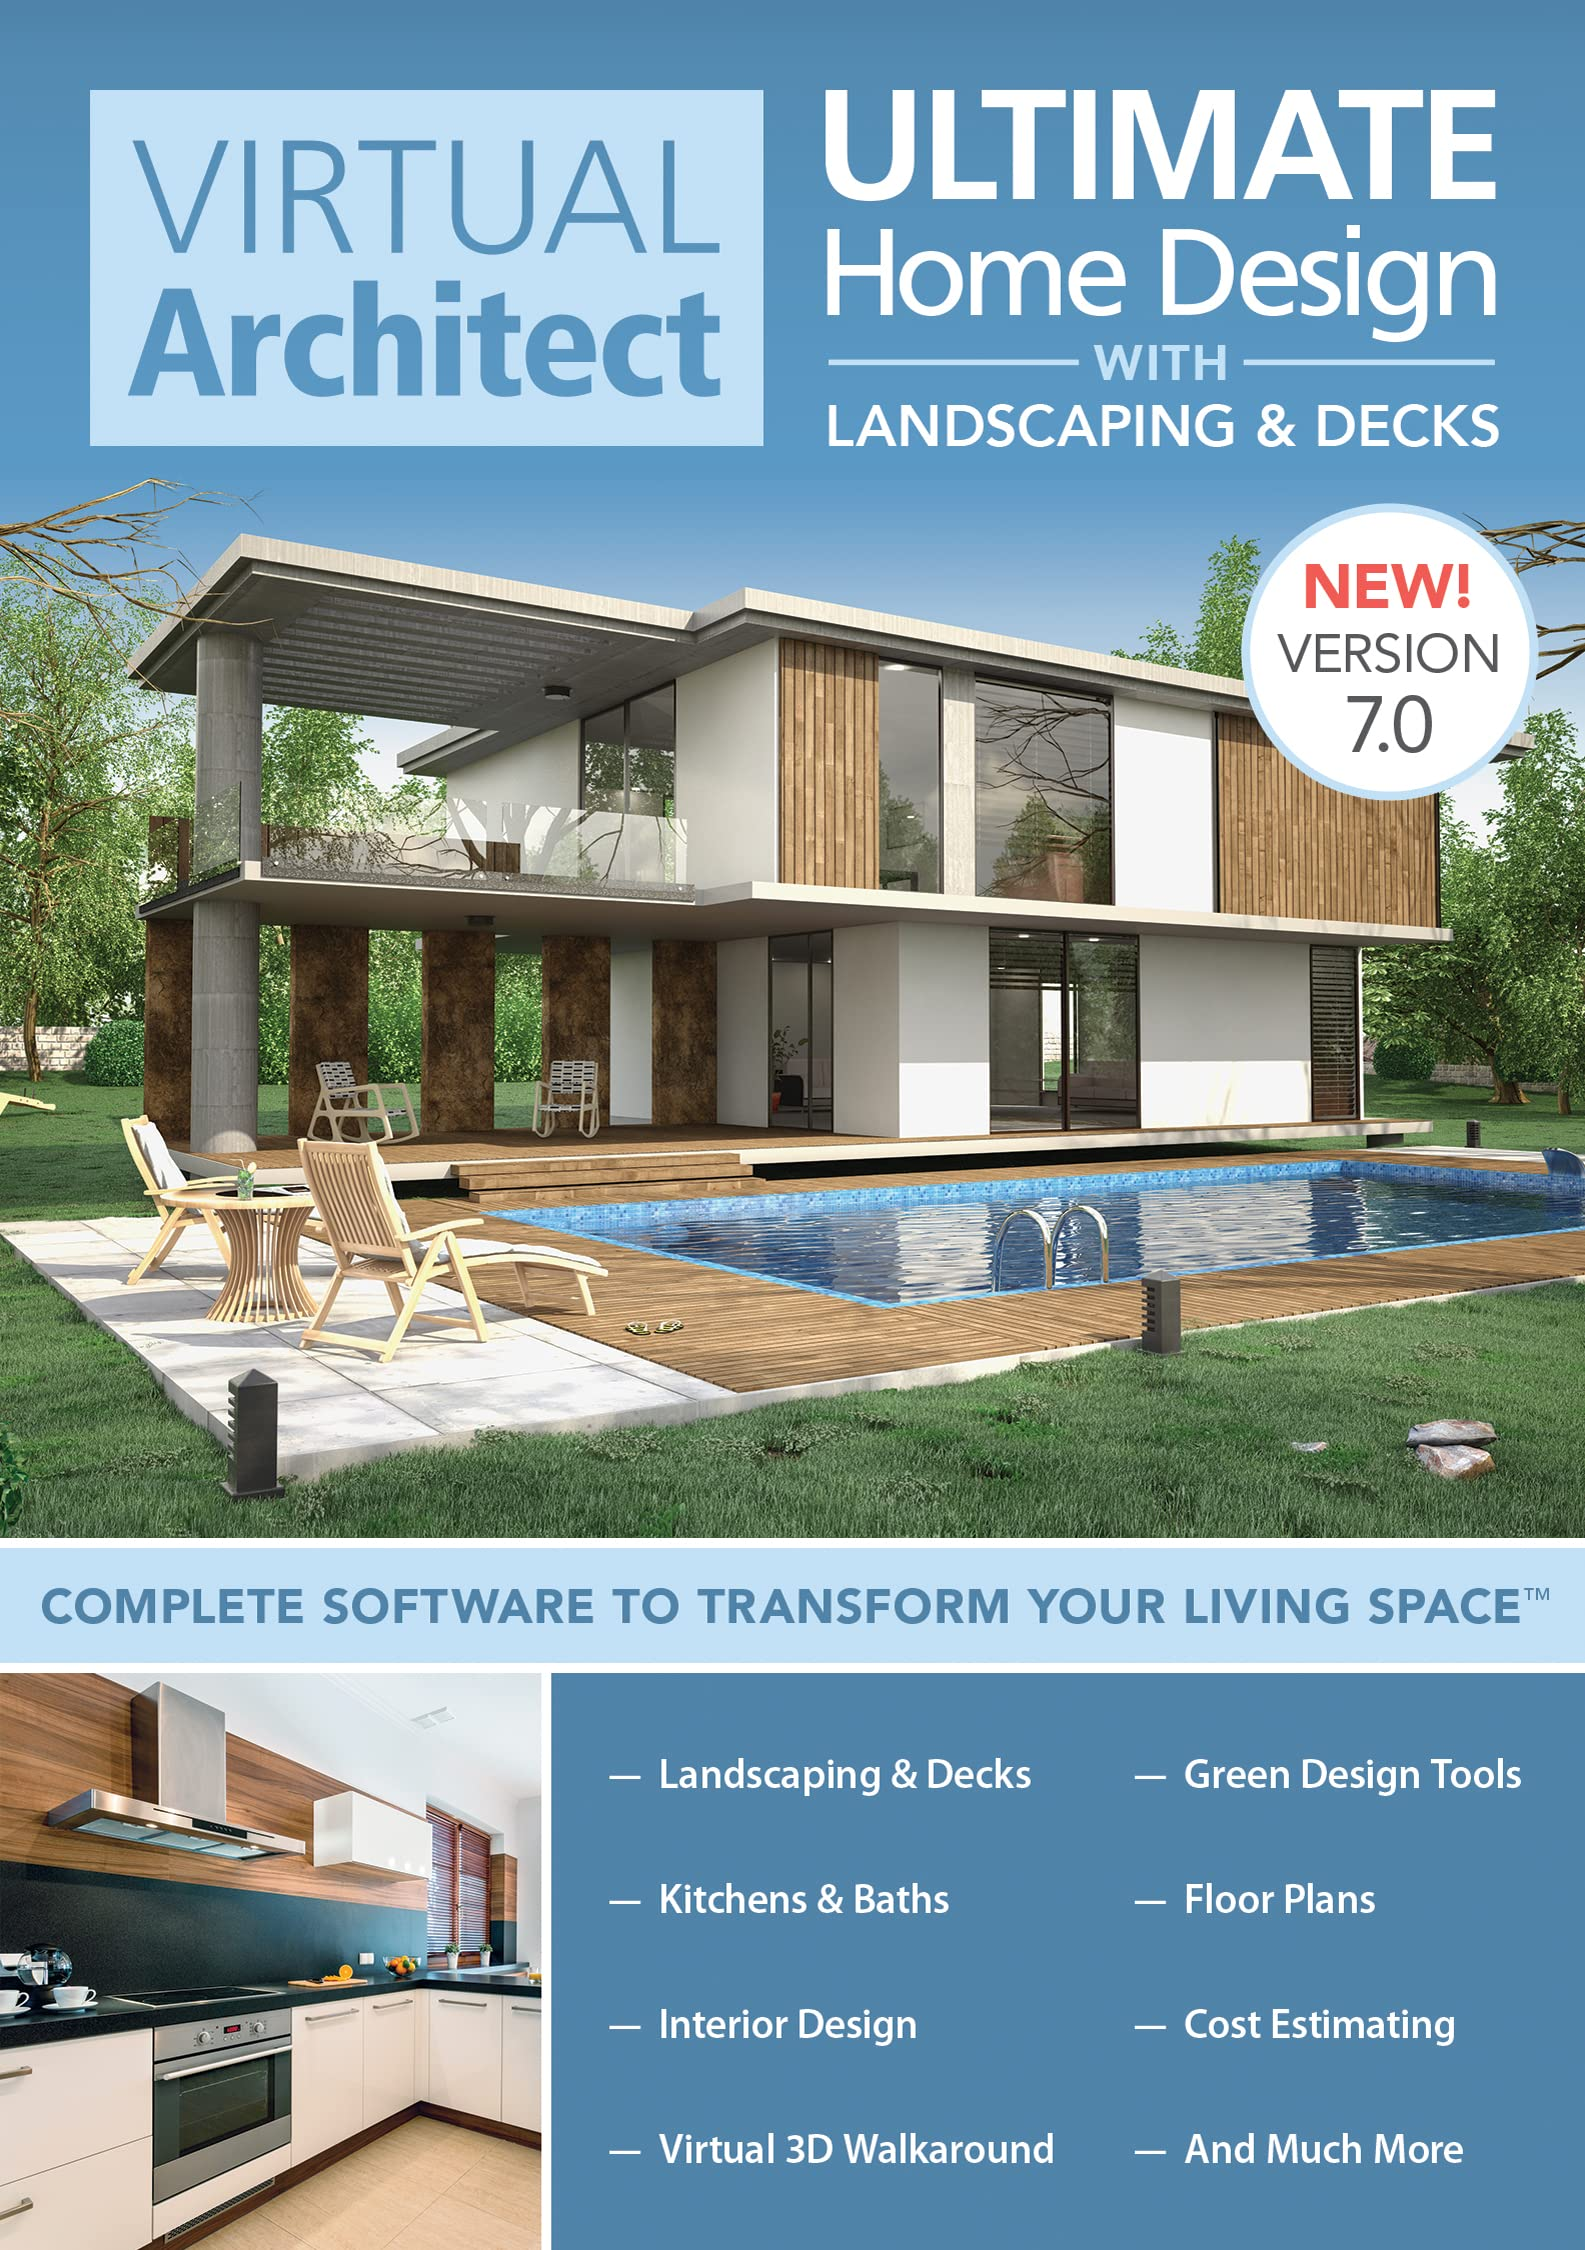 Amazon Com Virtual Architect Ultimate Home Design With Landscaping And Decks 7 0 Download Software